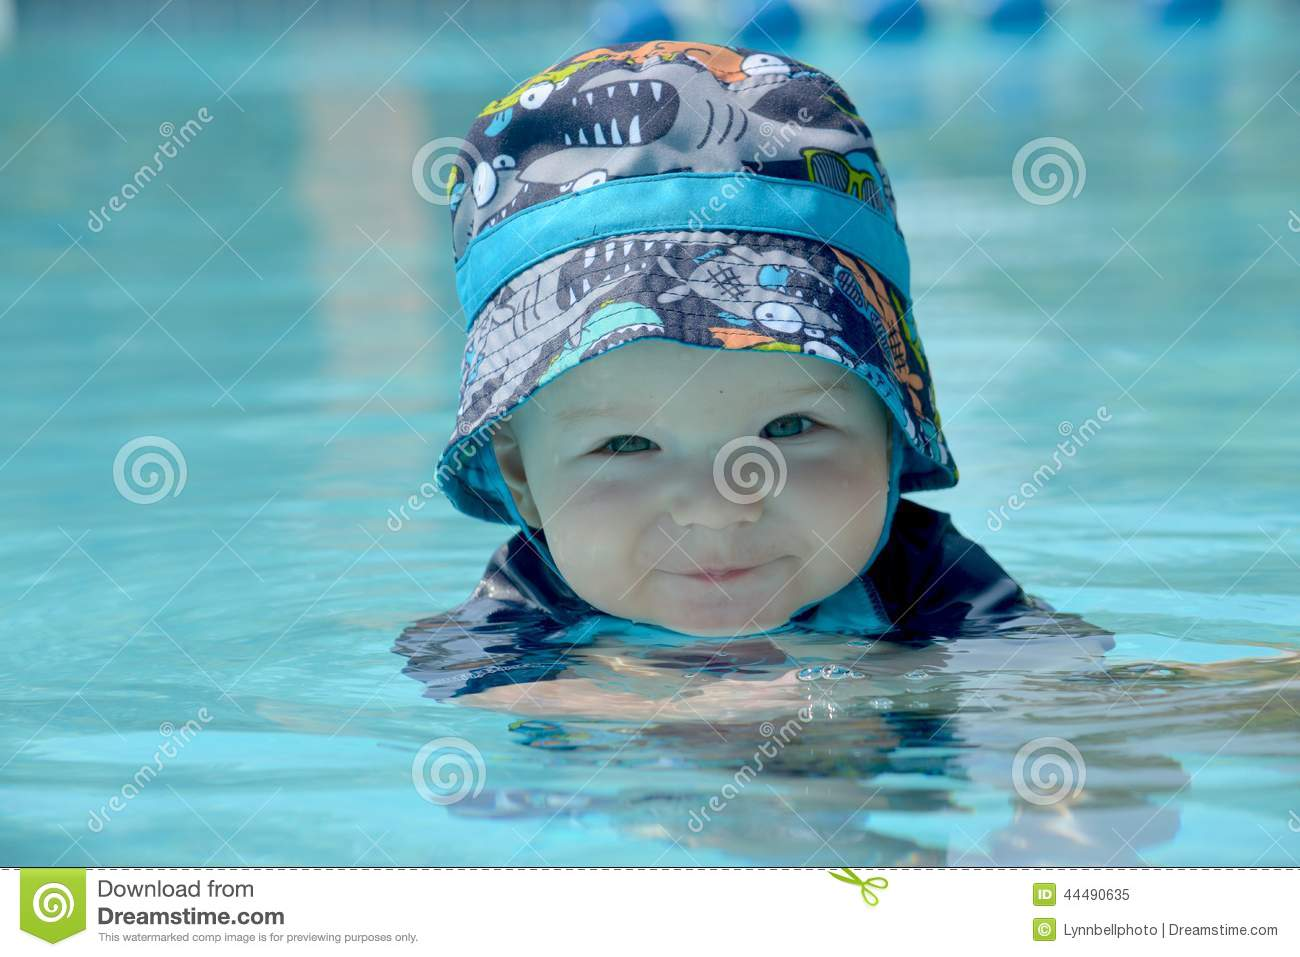 Baby Swimming with Hat stock image. Image of family f43b988eb69